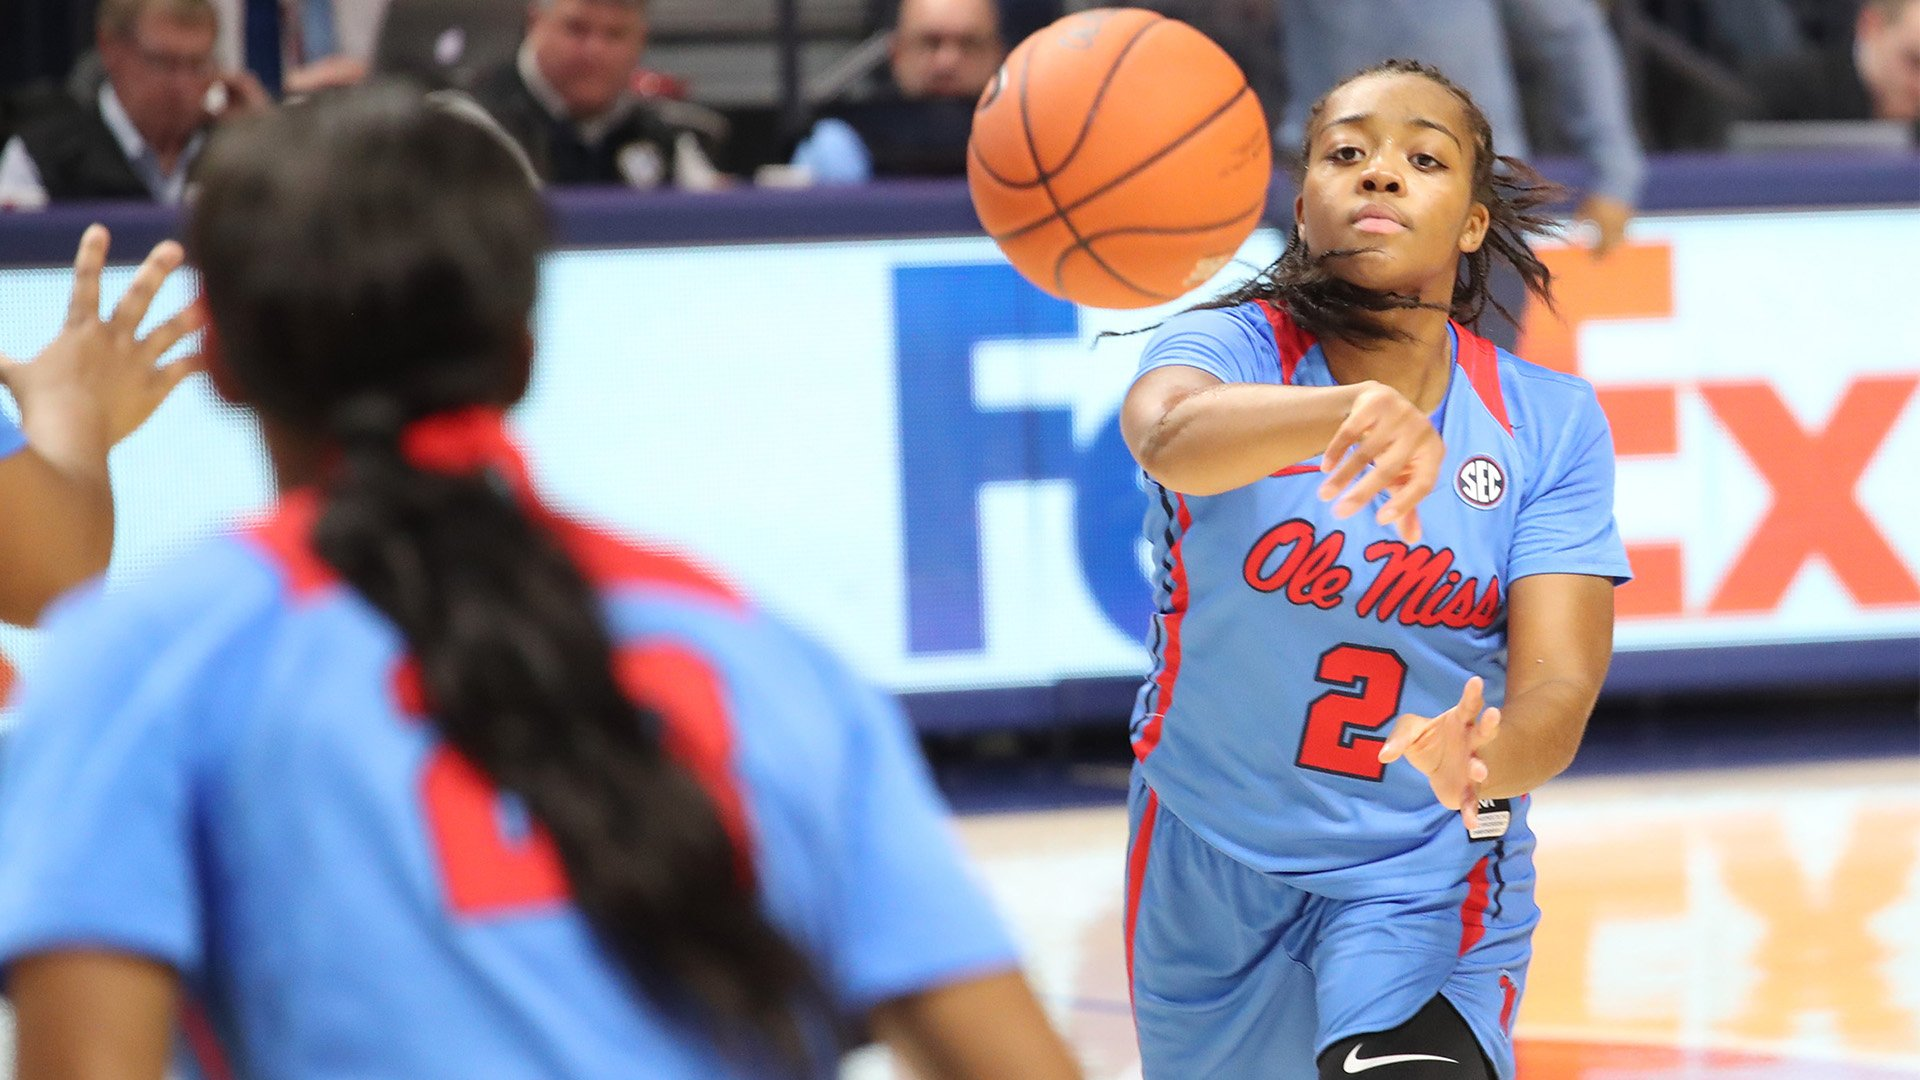 The Season: Ole Miss Women's Basketball - No Ceilings (2018)